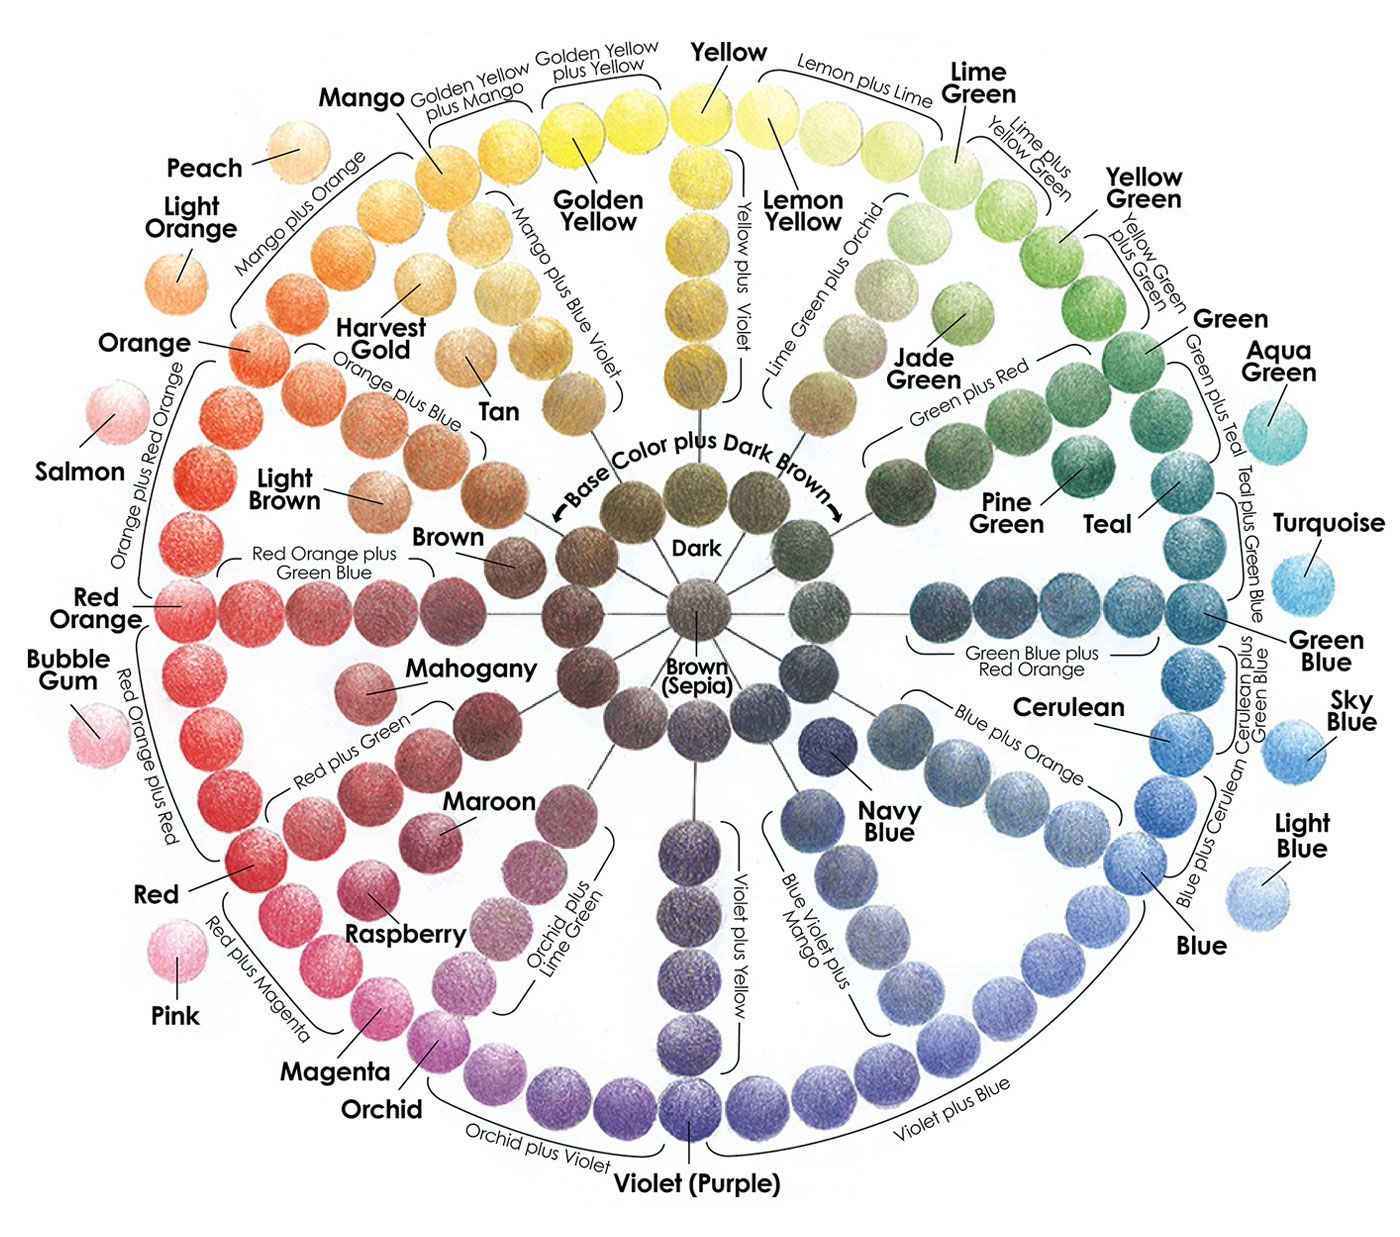 Color wheel online free - Crayola Color Escapes Adult Coloring Tips And Techniques For Colored Pencils Crayola